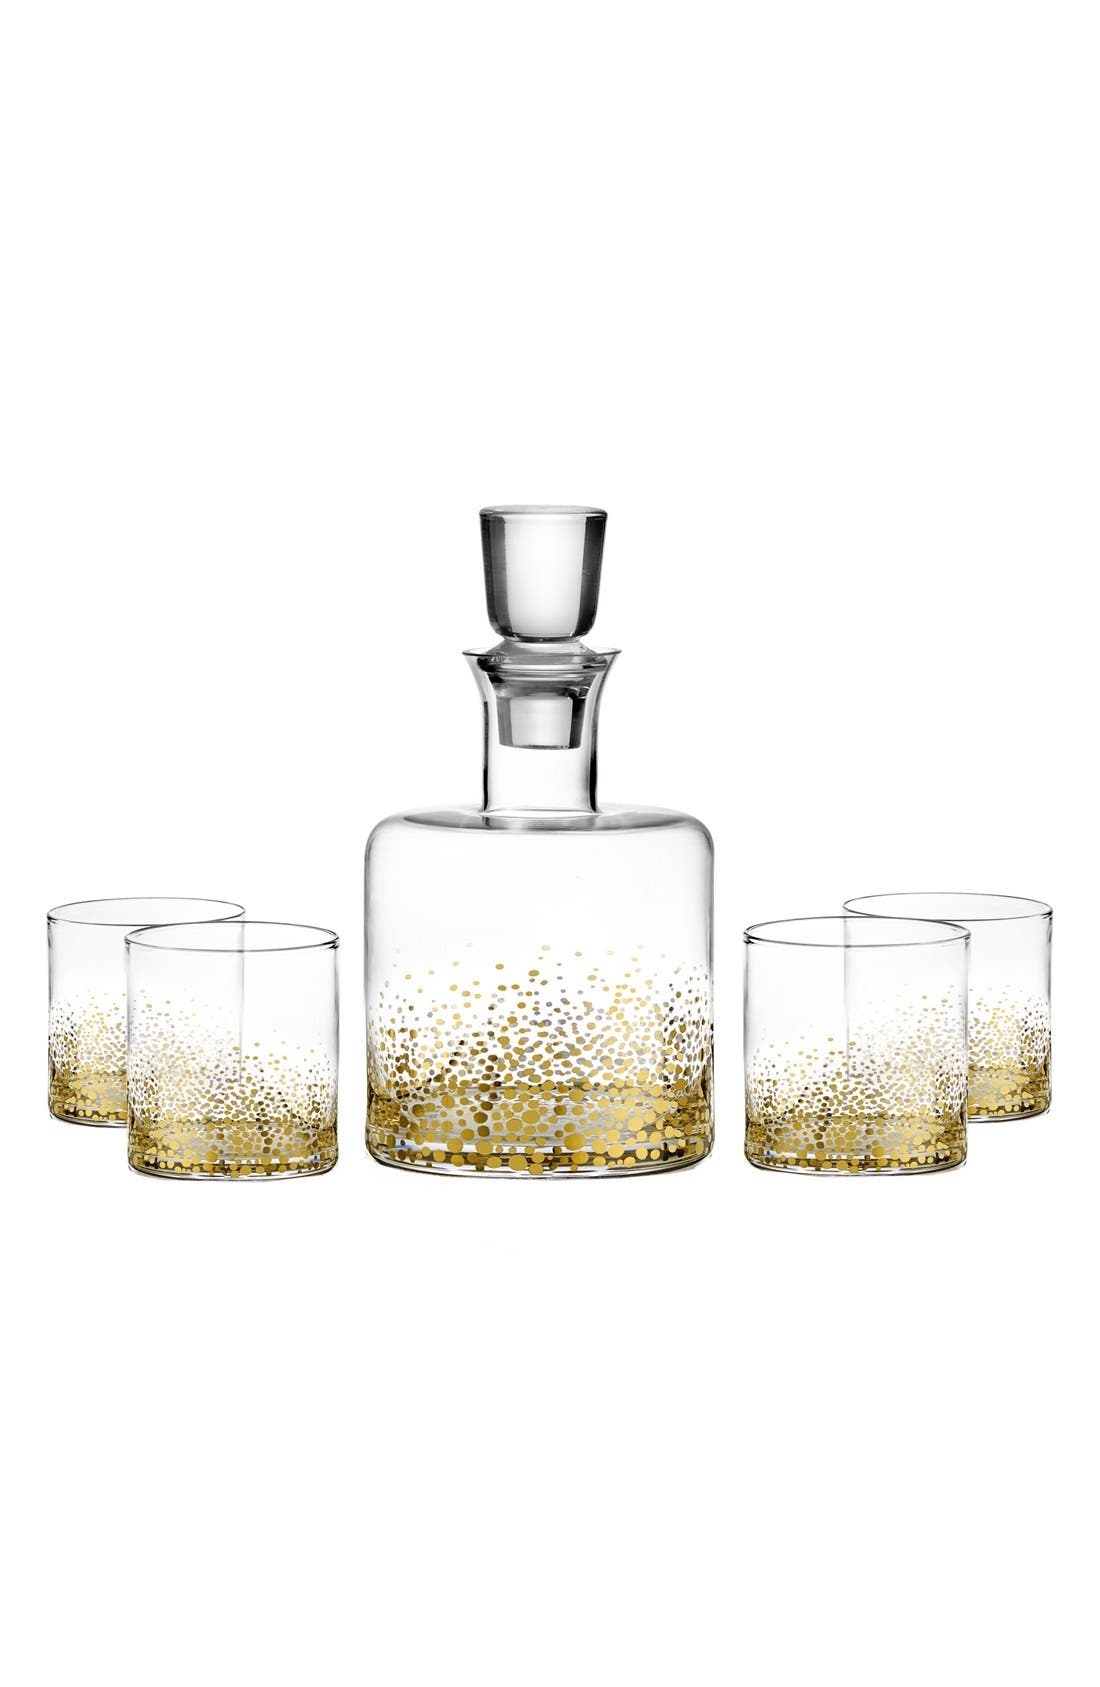 Main Image - American Atelier 'Daphne' Decanter & Whiskey Glasses (Set of 5)